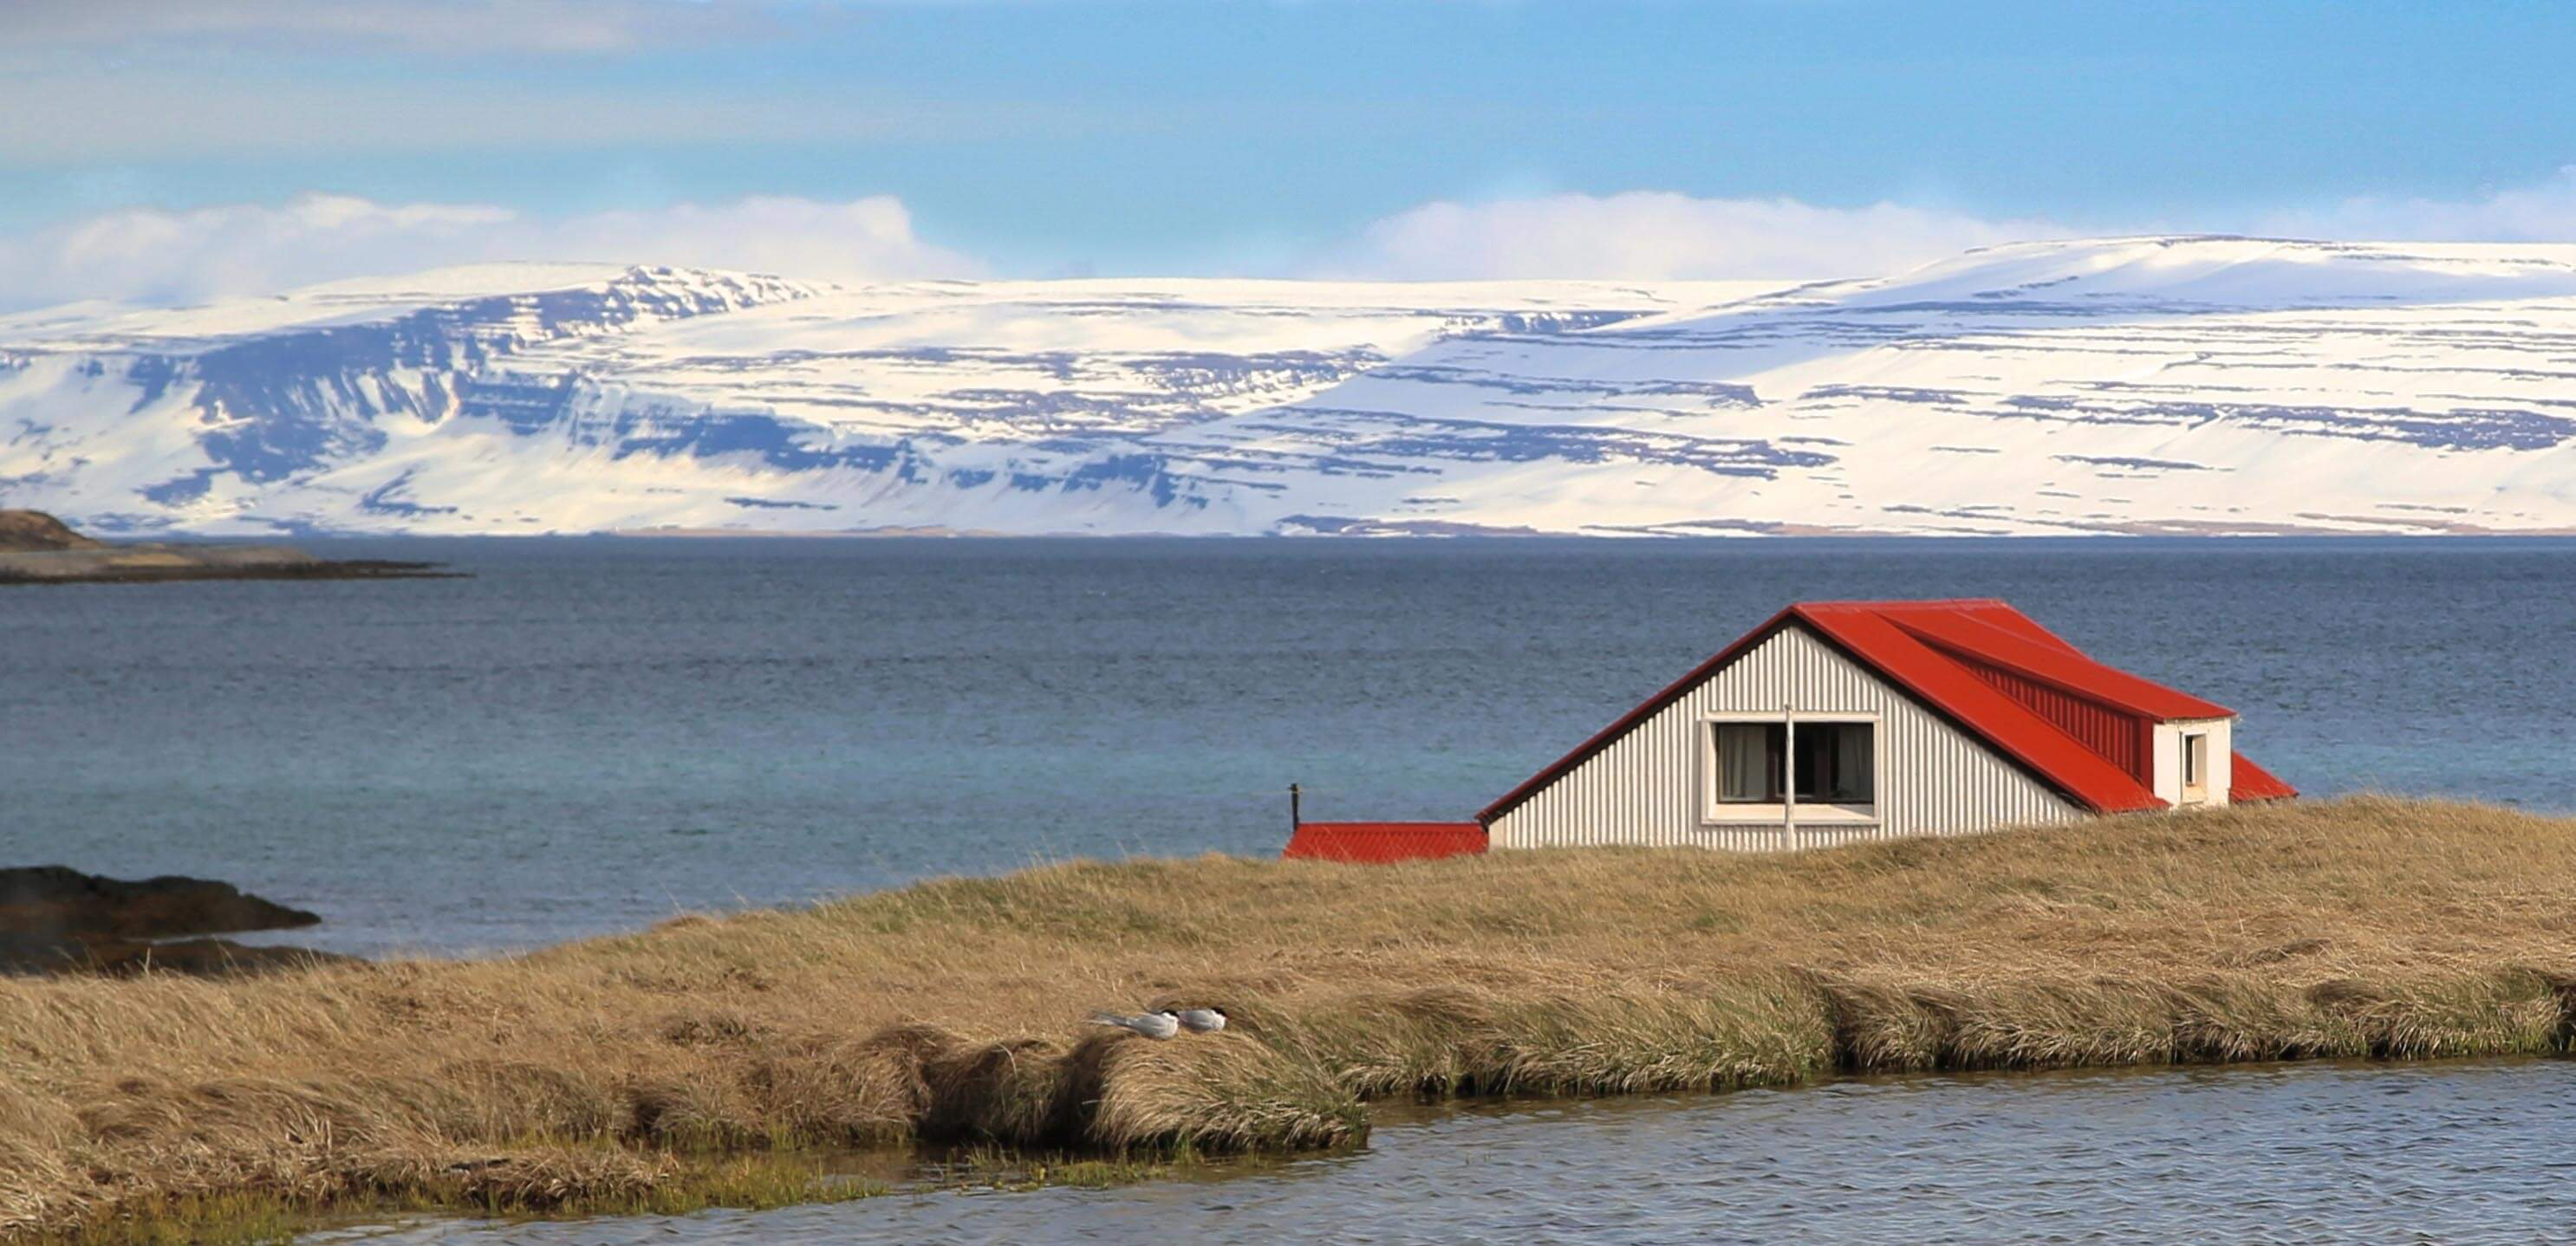 Our Icelandic Sea Salt comes from some of the cleanest water on earth.